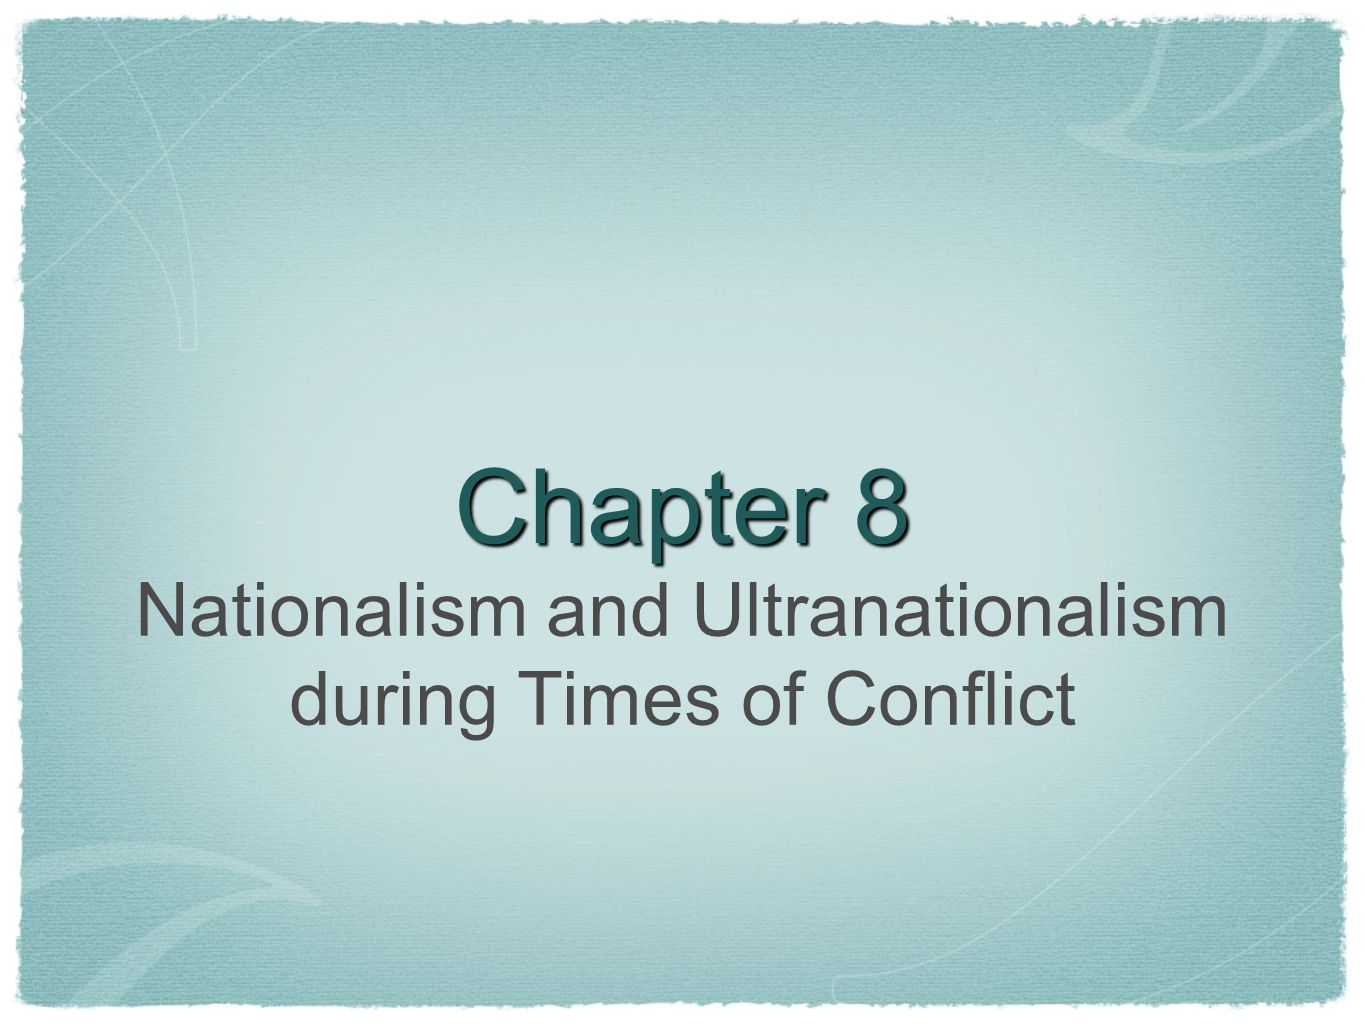 Nationalism and Ultranationalism during Times of Conflict